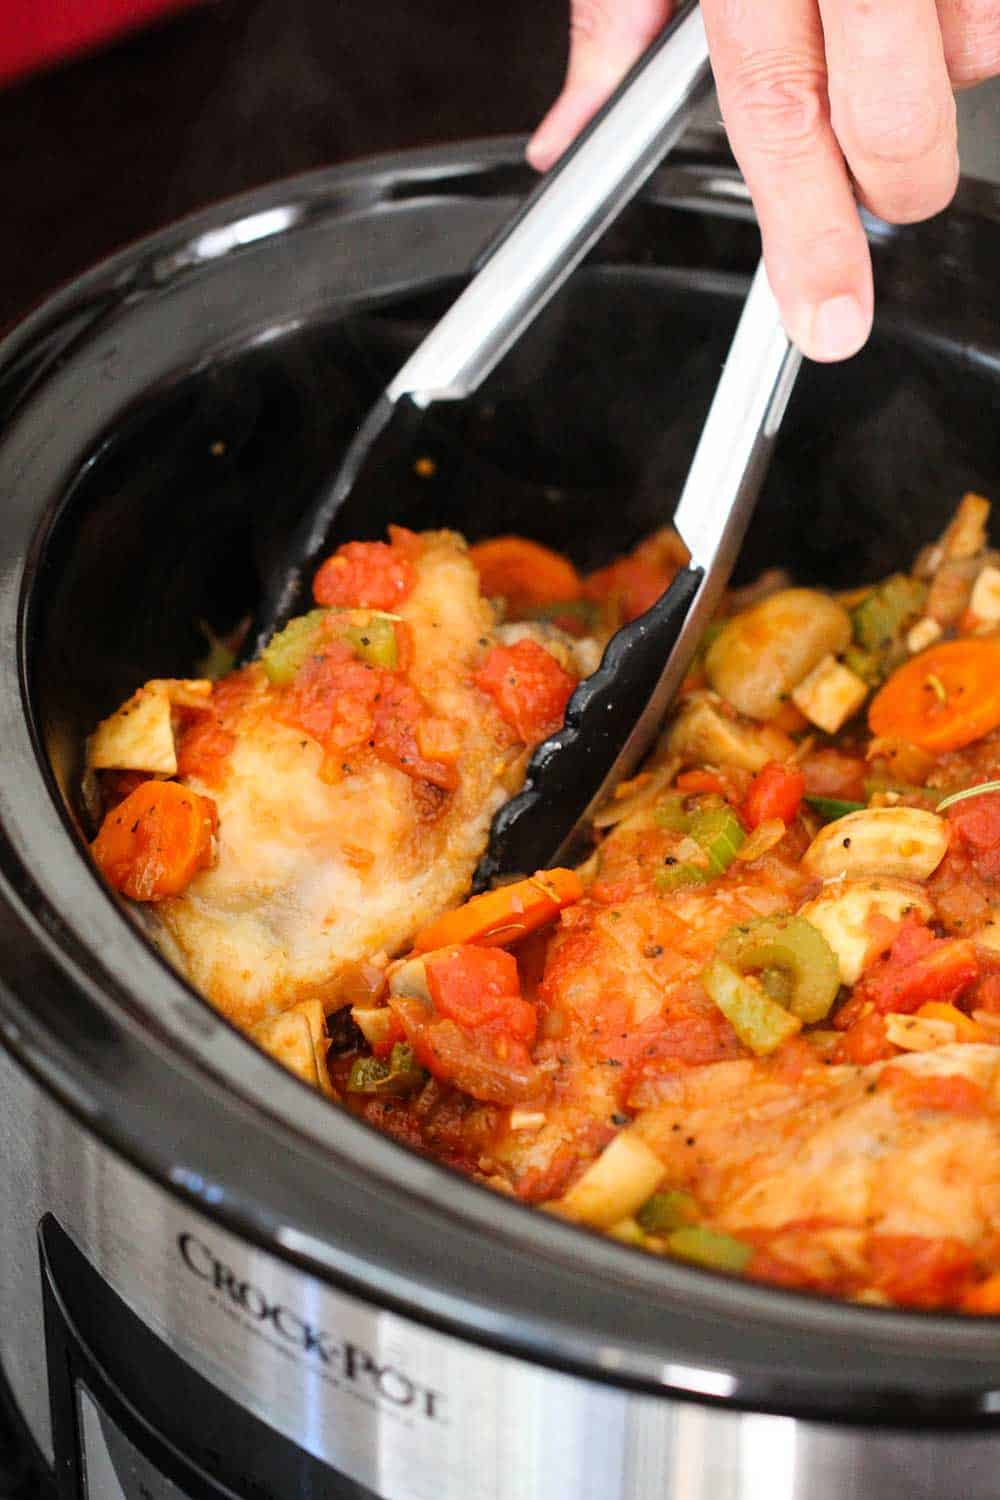 A pair of tongs nestling seared chicken thighs into a stew sauce in a crock-pot for Provençal chicken stew.